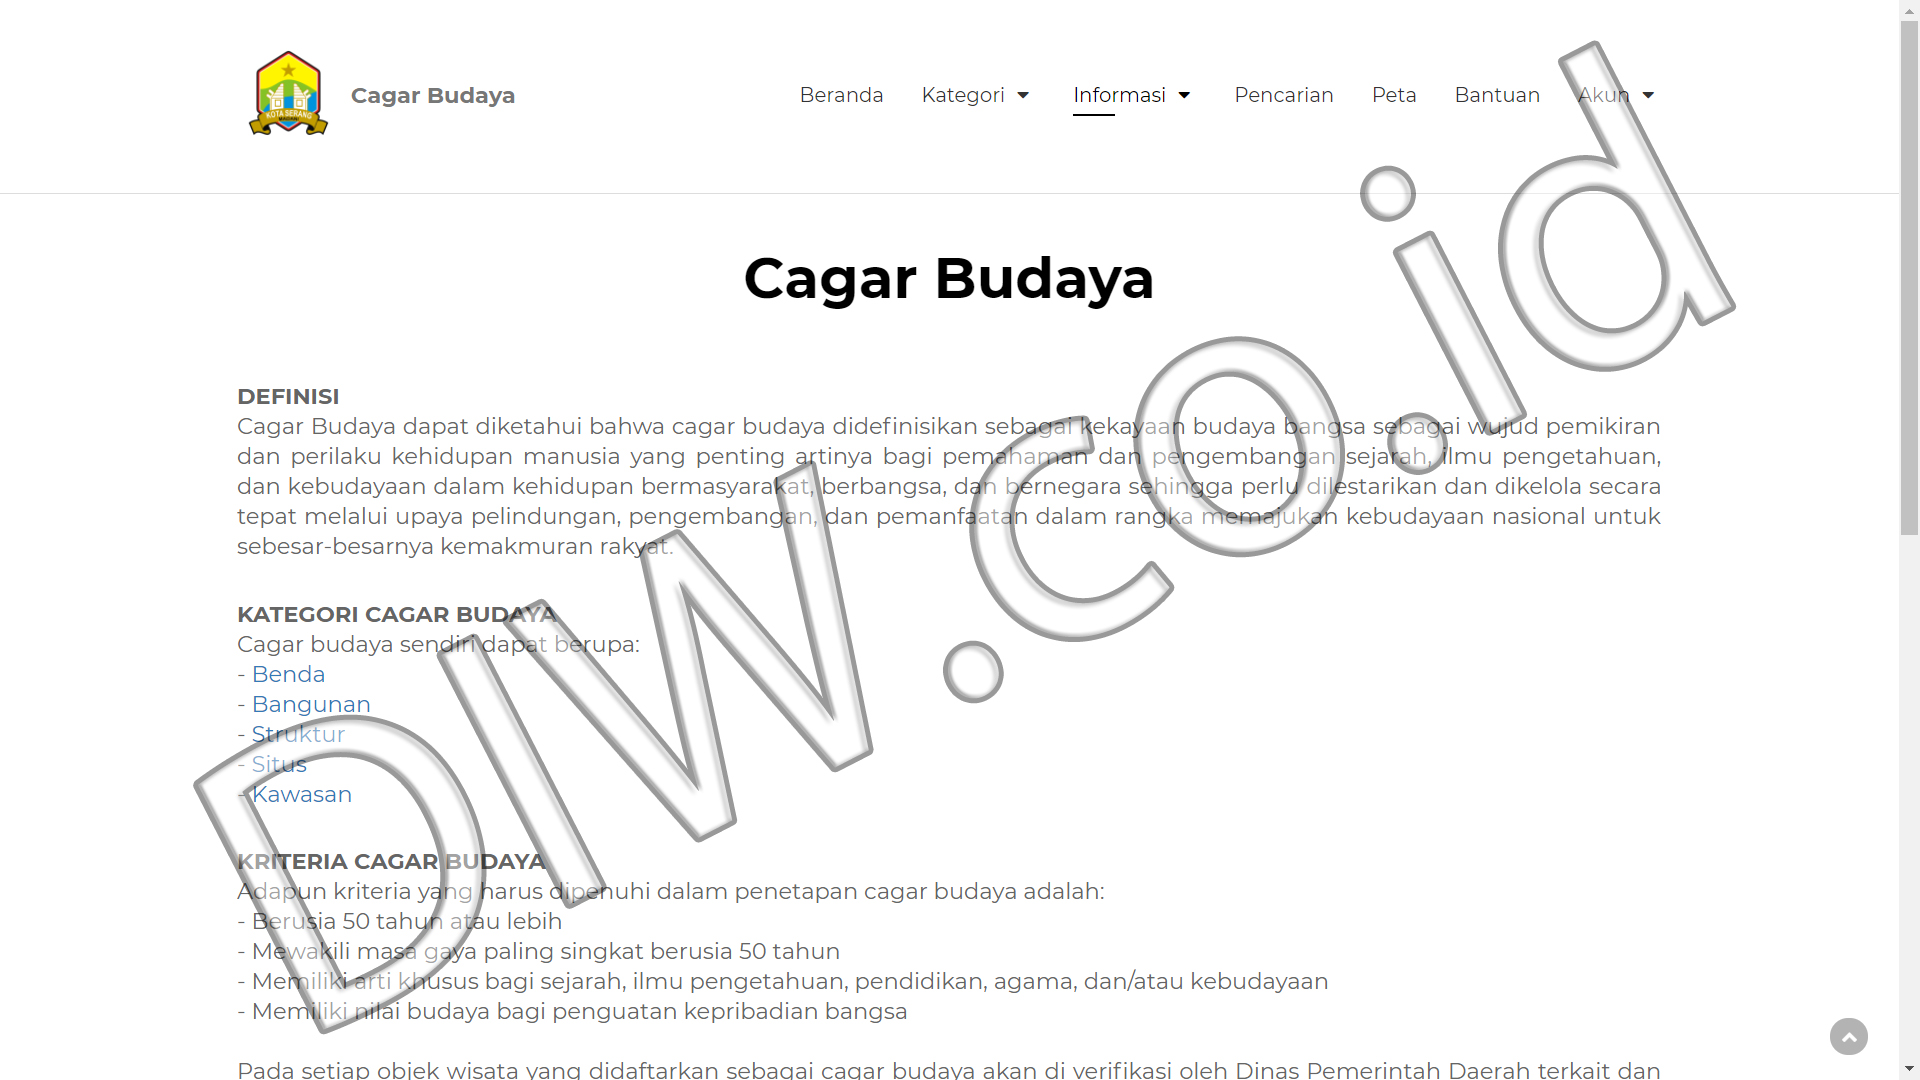 Portfolio 2 - Cagar Budaya - Andri Sunardi - Freelancer - Web Developer - CEO DIW.co.id